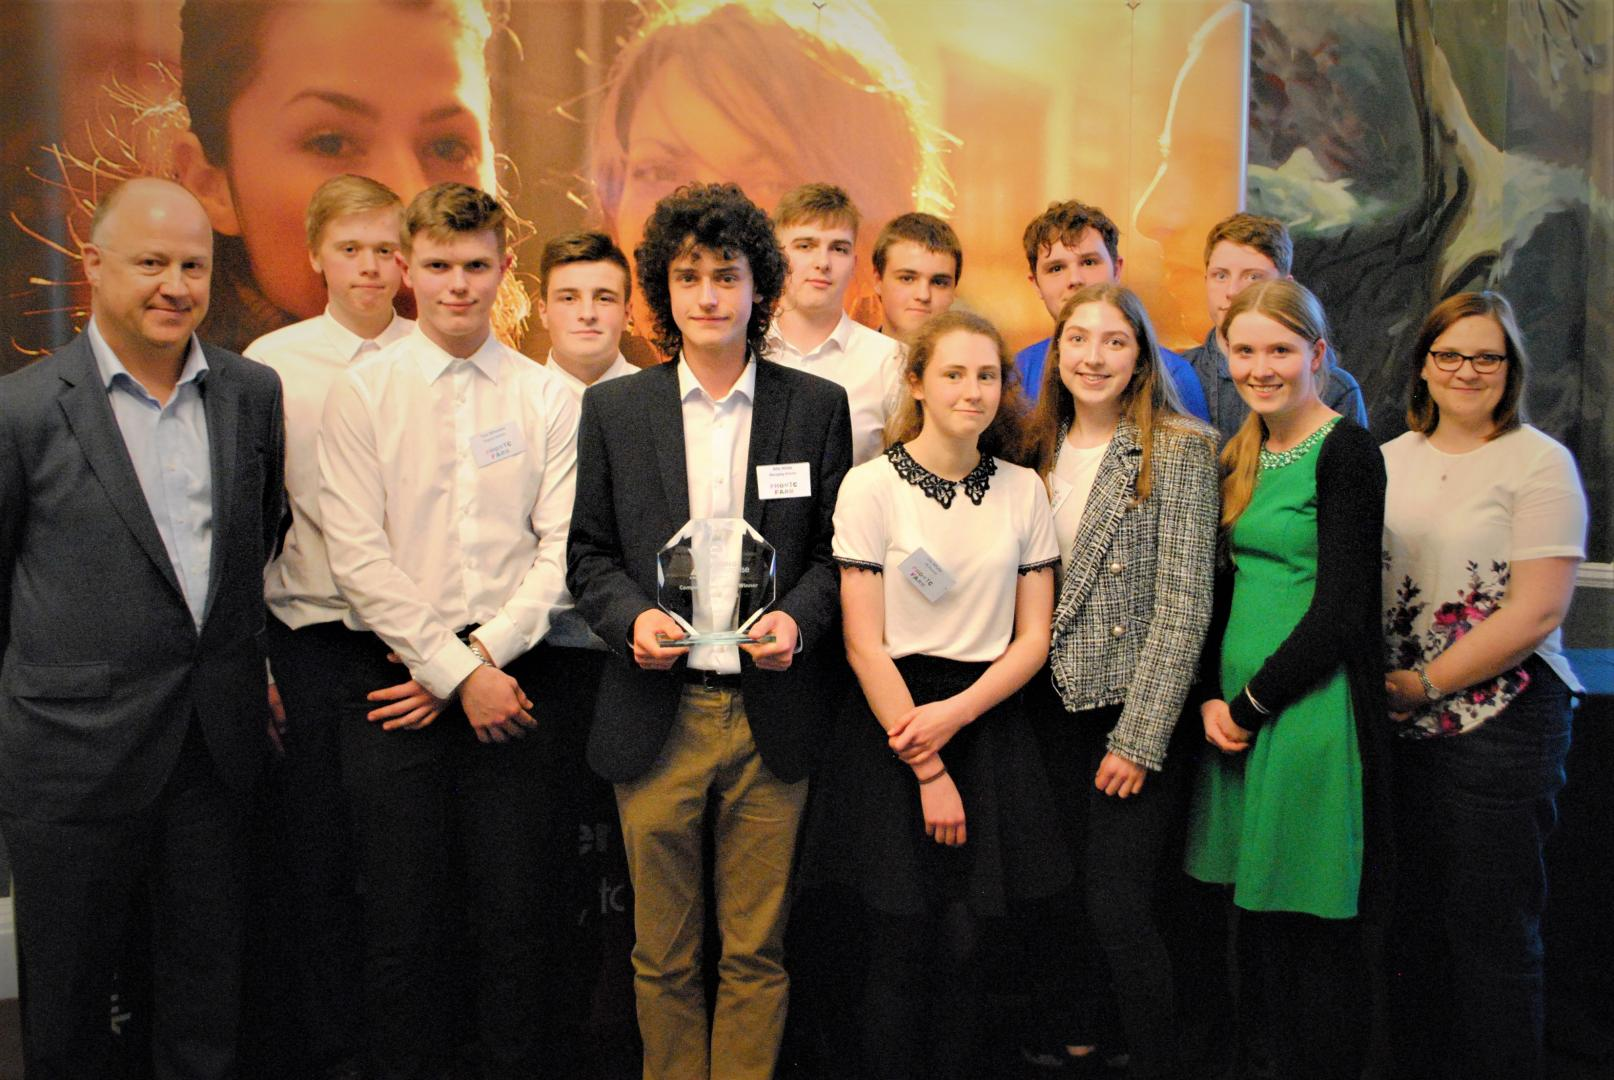 Phonic Farm Young Enterprise West of England Winners